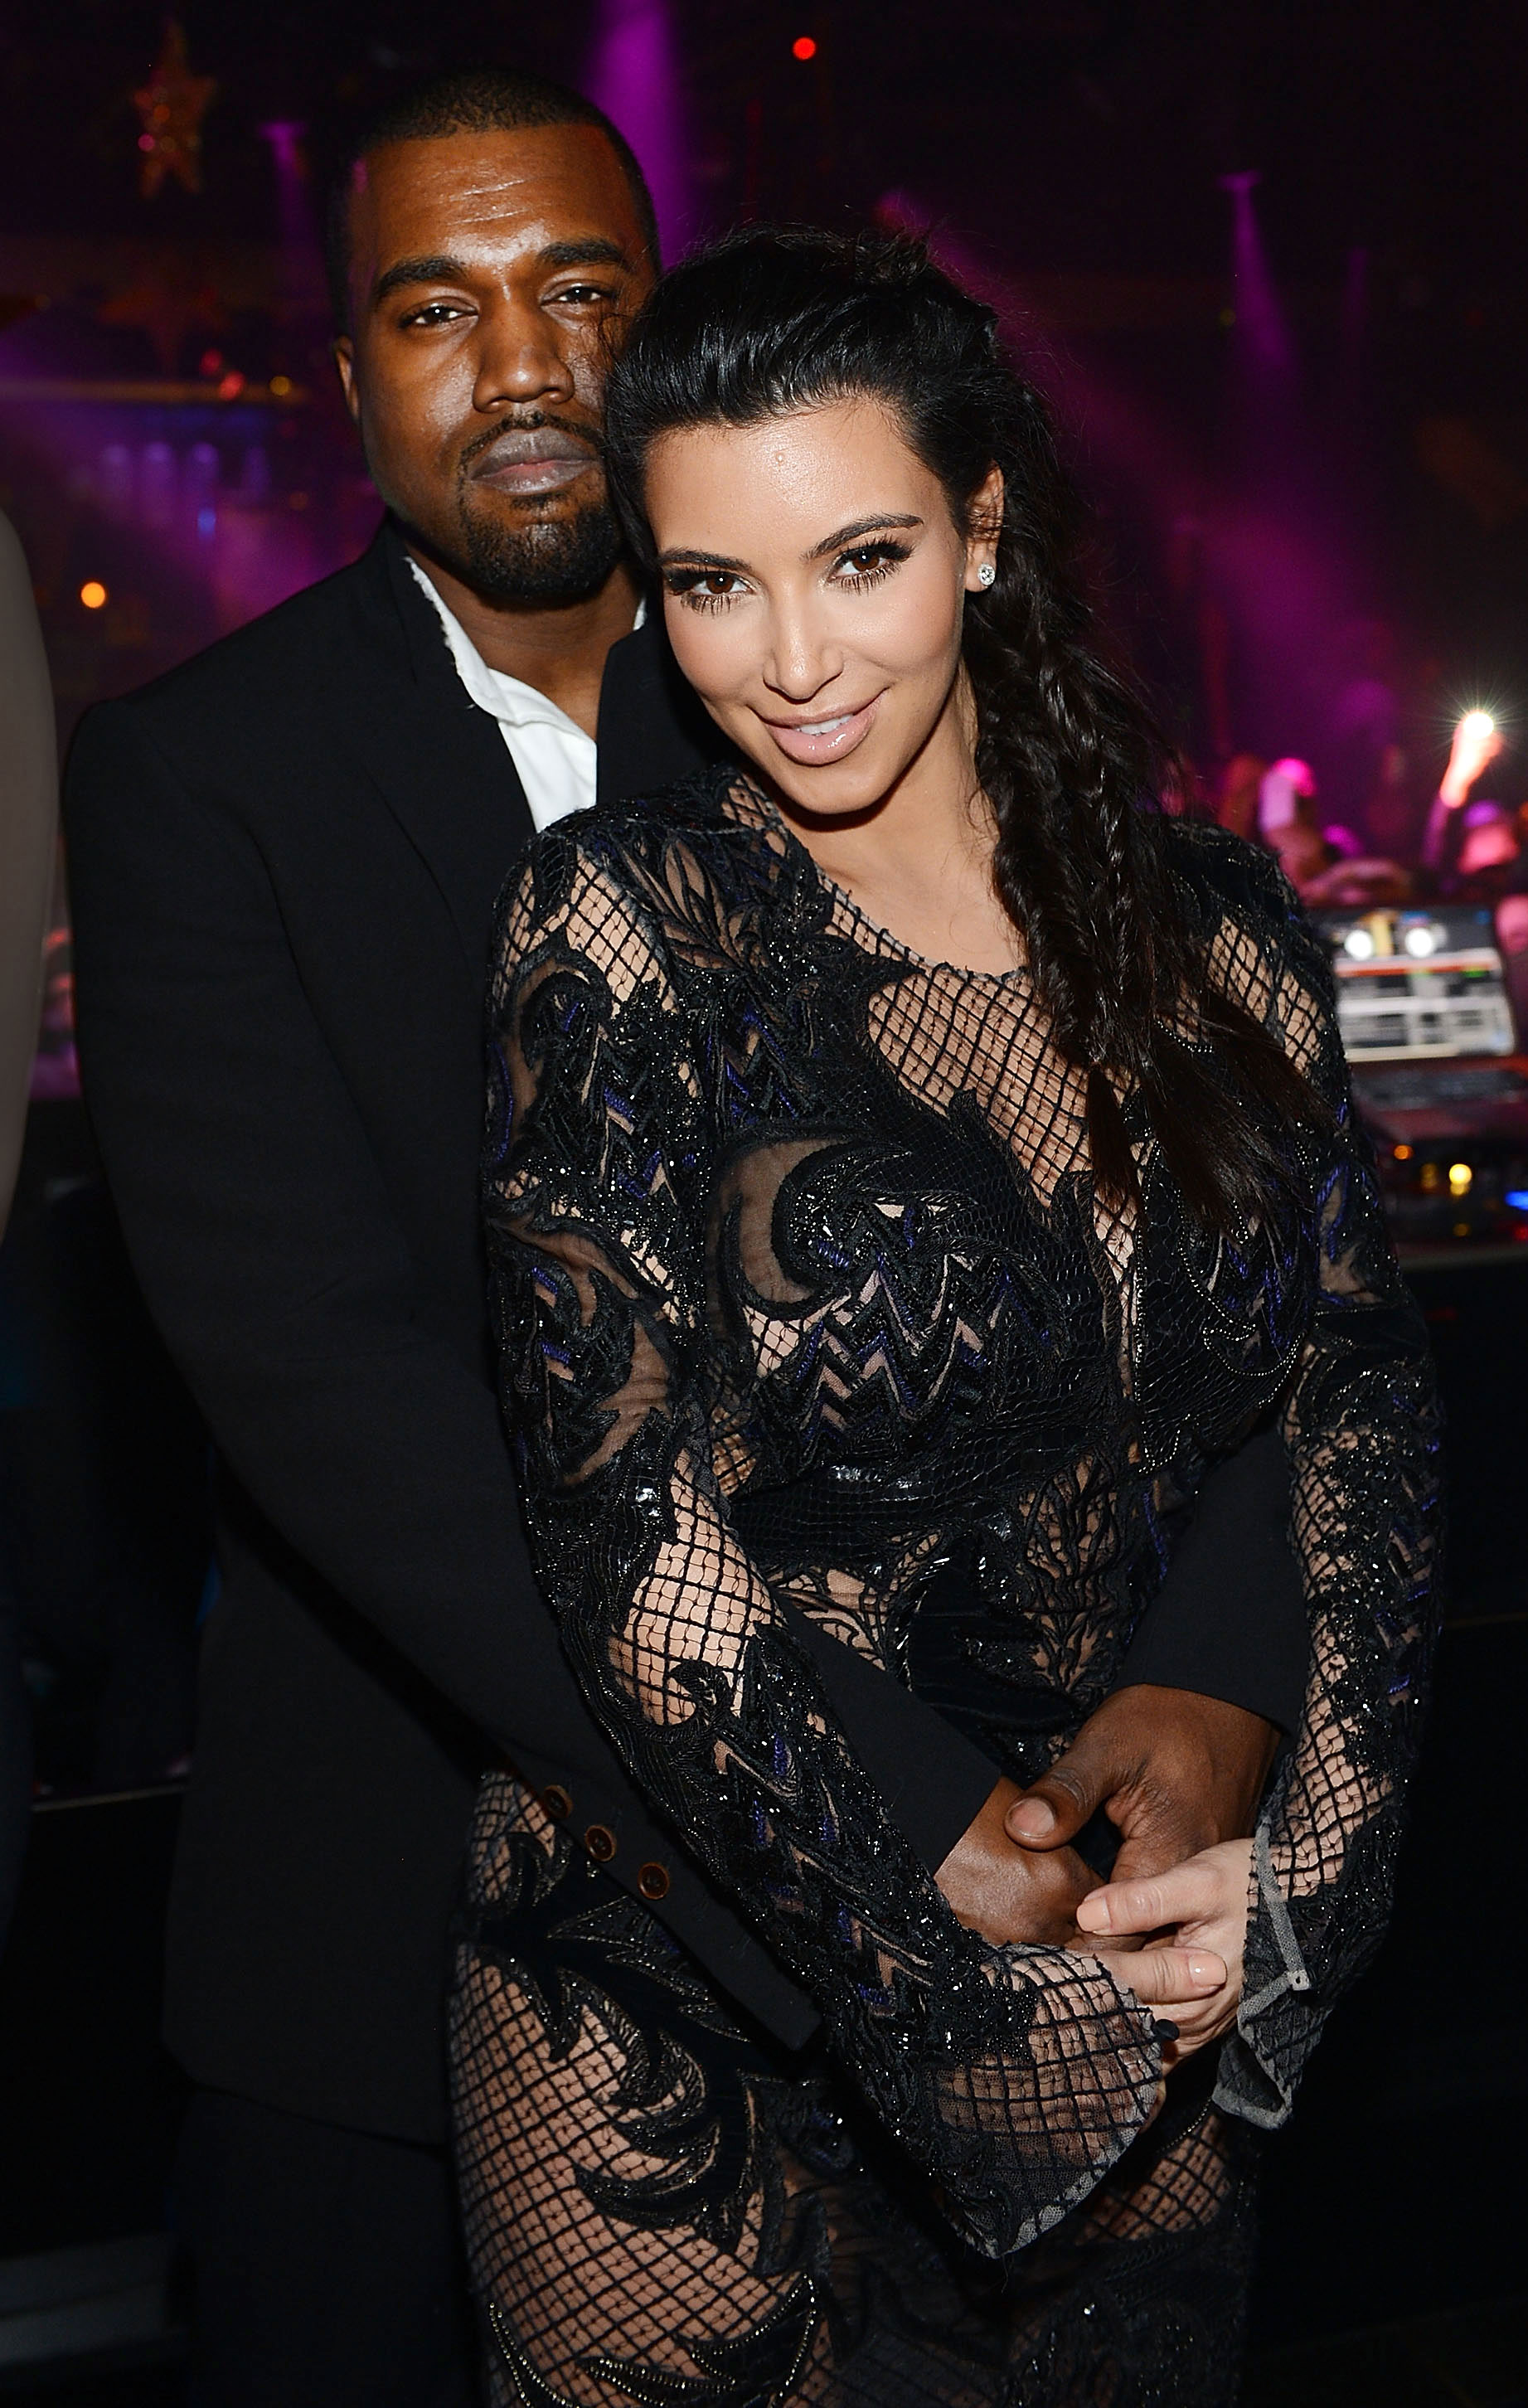 När gjorde Kim k och Kanye West start dating